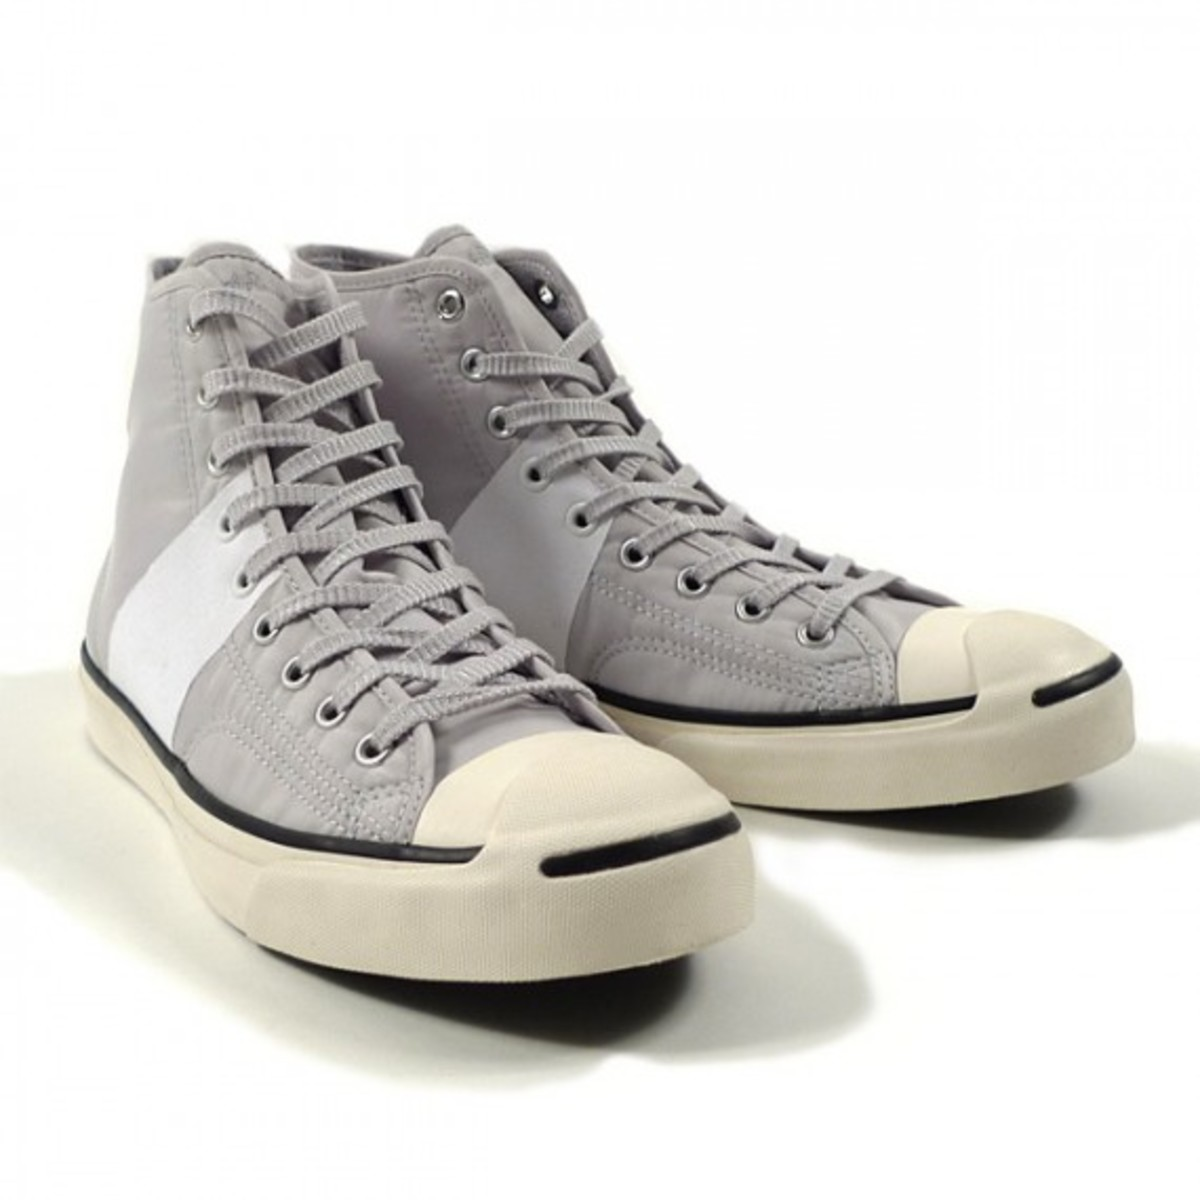 converse-first-string-jack-purcell-johnny-03